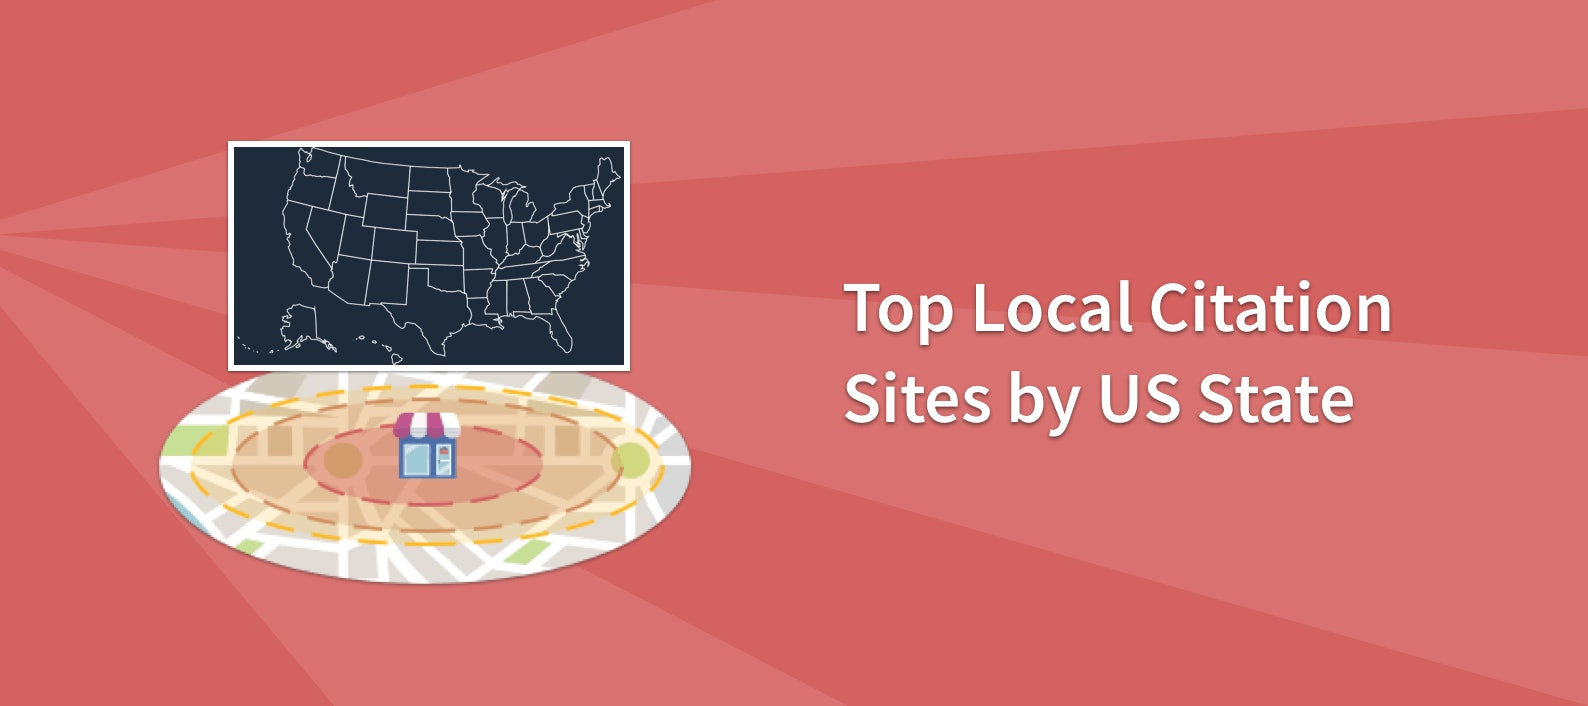 Top Local Citation Sites by US State